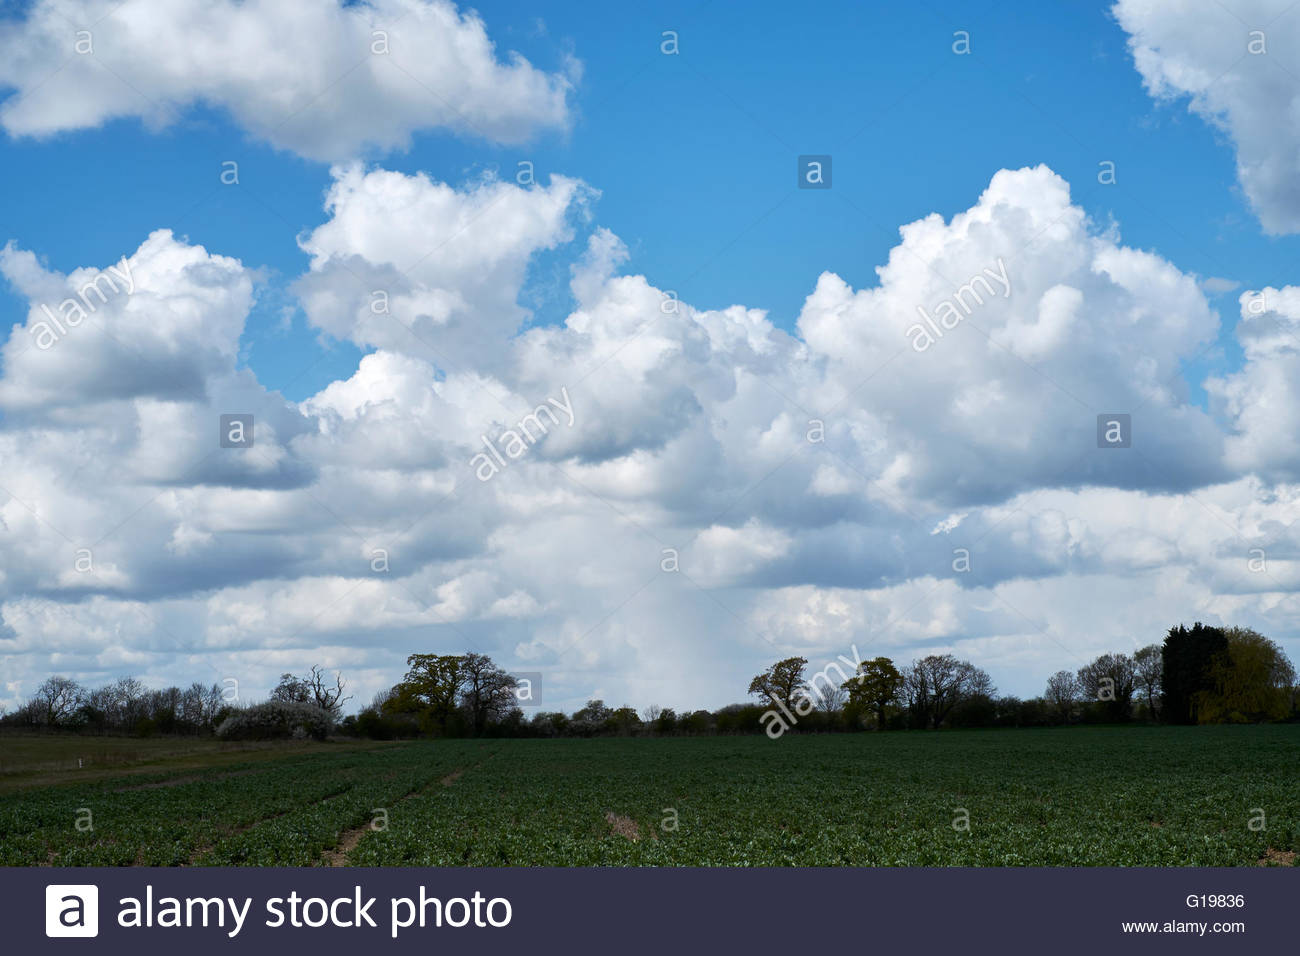 Cumulonimbus clouds forming against a bright blue sky over agricultural land. Bedfordshire, UK. - Stock Image